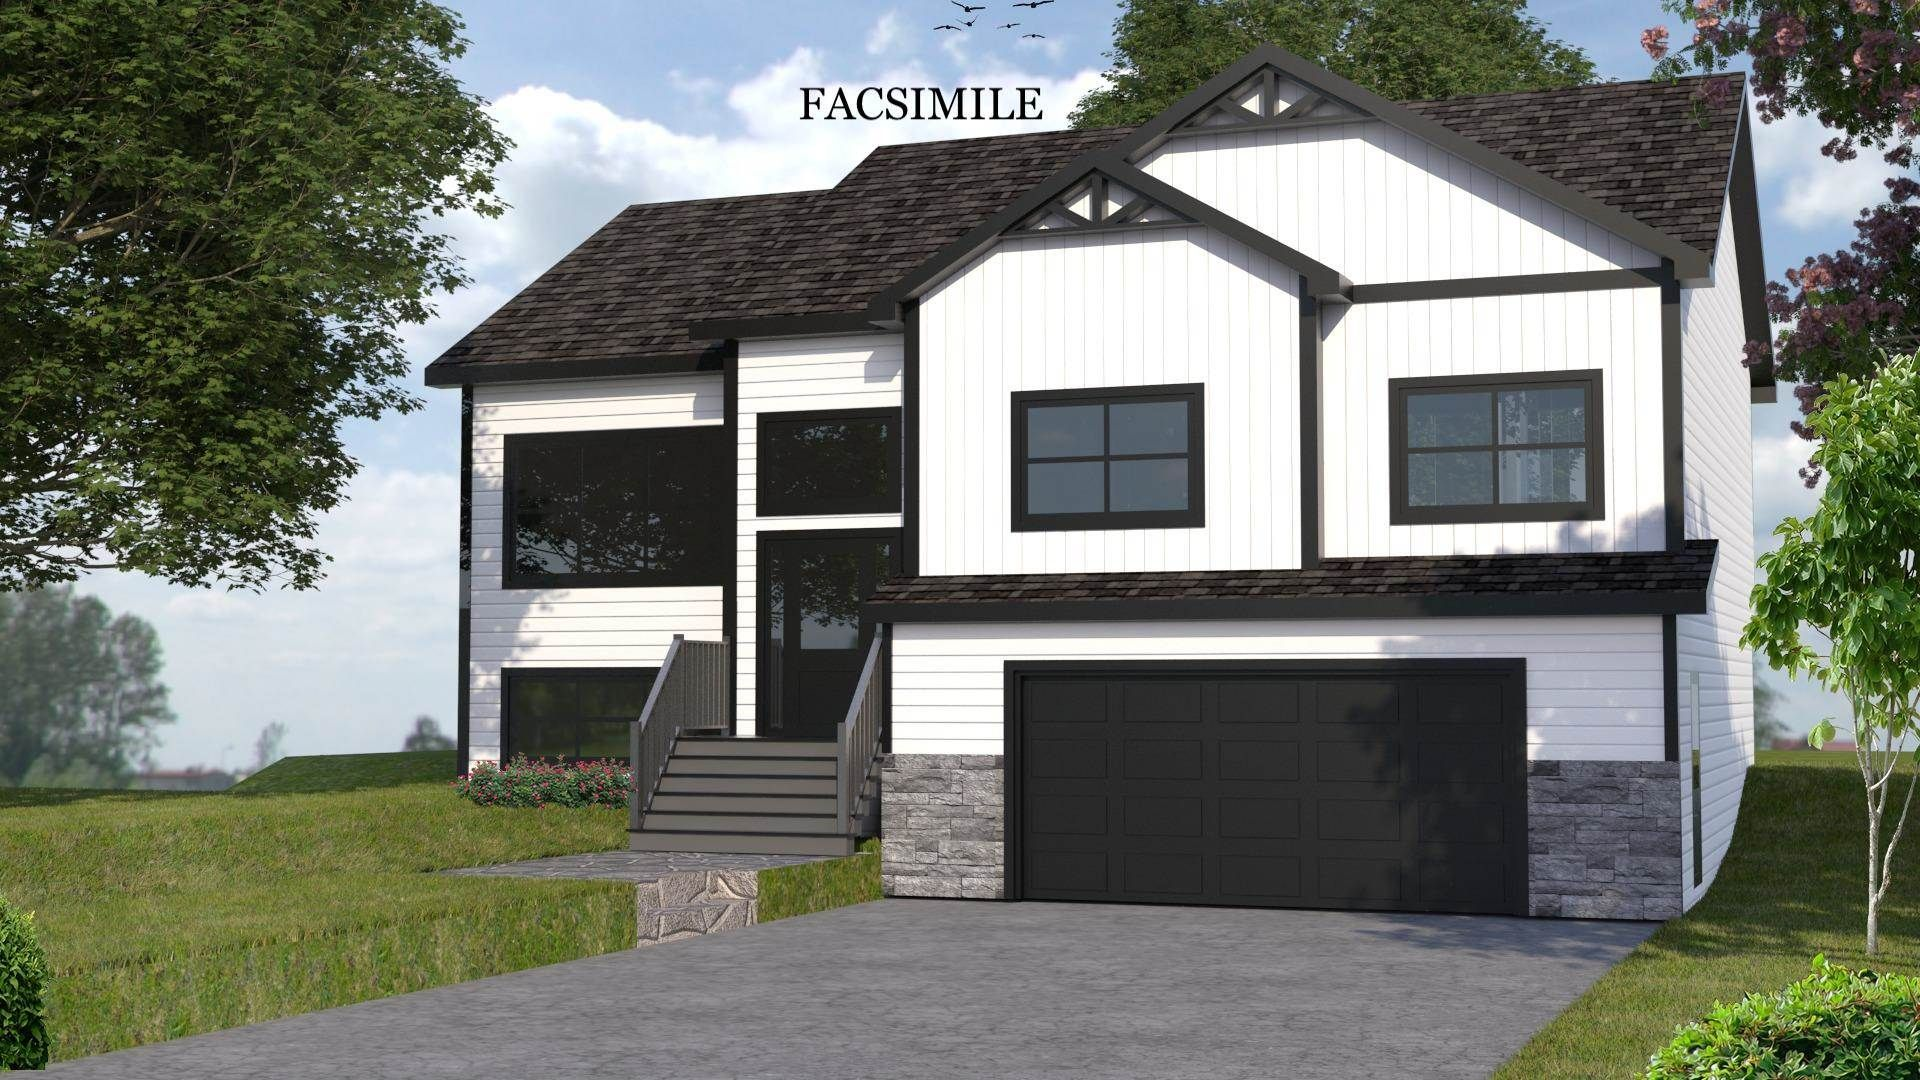 Main Photo: Lot 218A 89 Sidhu Drive in Beaver Bank: 26-Beaverbank, Upper Sackville Residential for sale (Halifax-Dartmouth)  : MLS®# 202117971